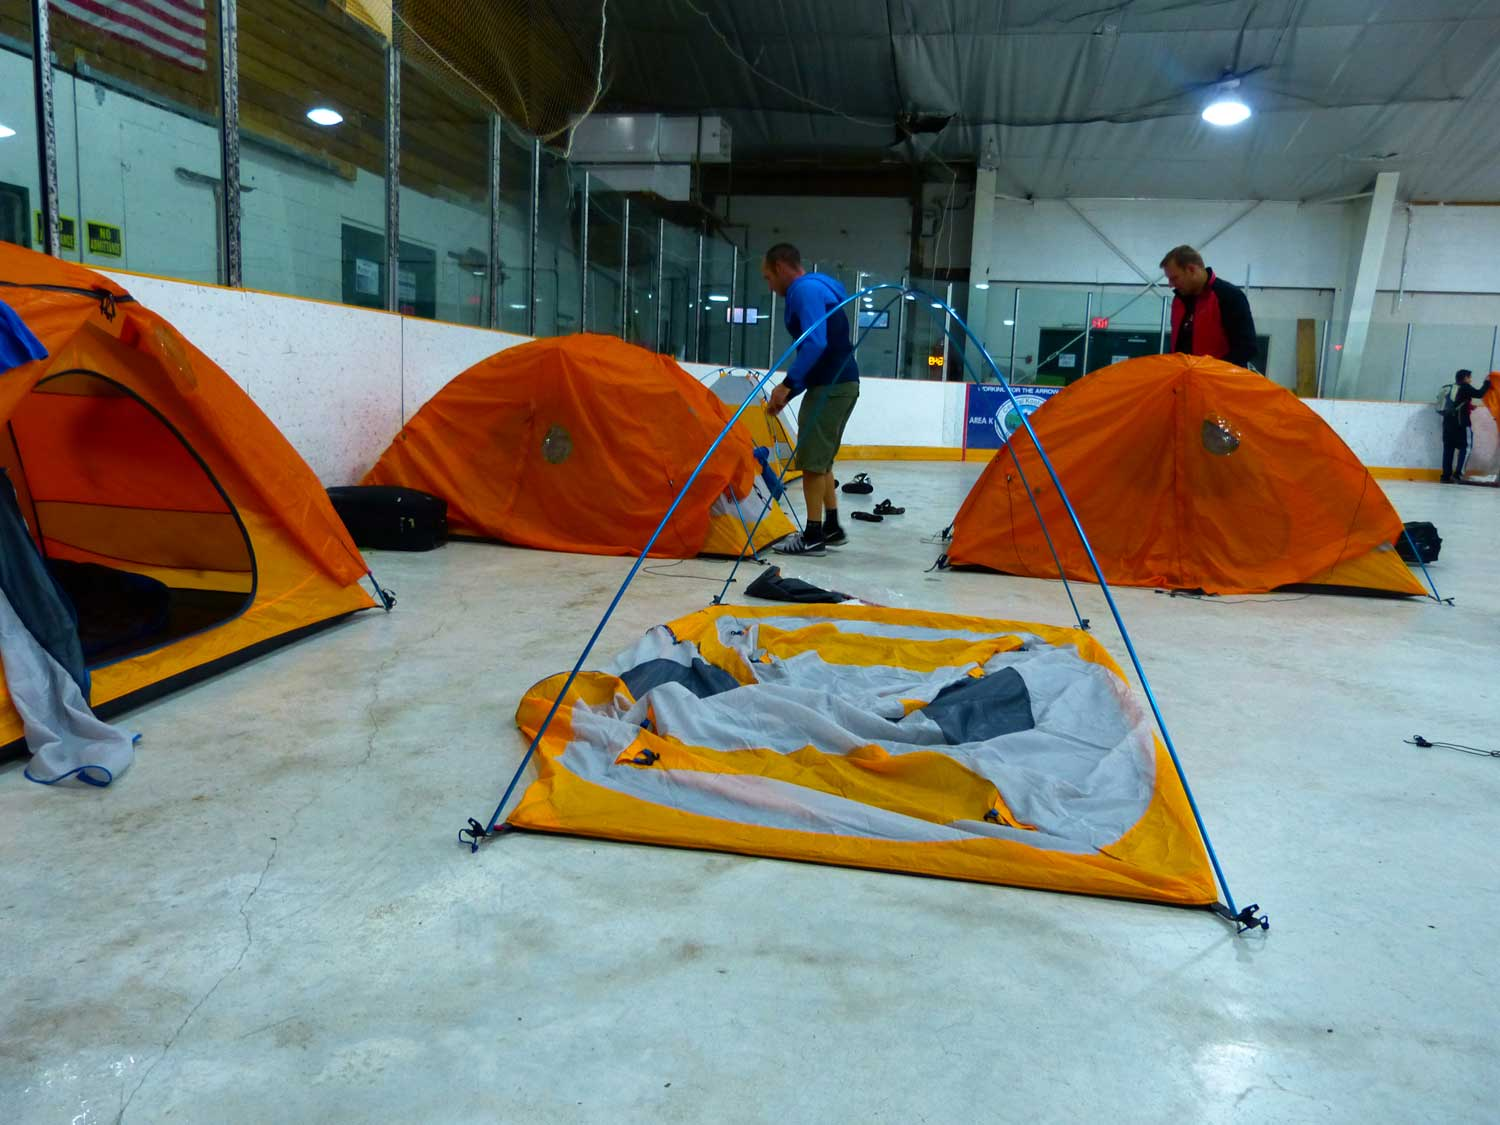 Tents-up-in-ice-arena